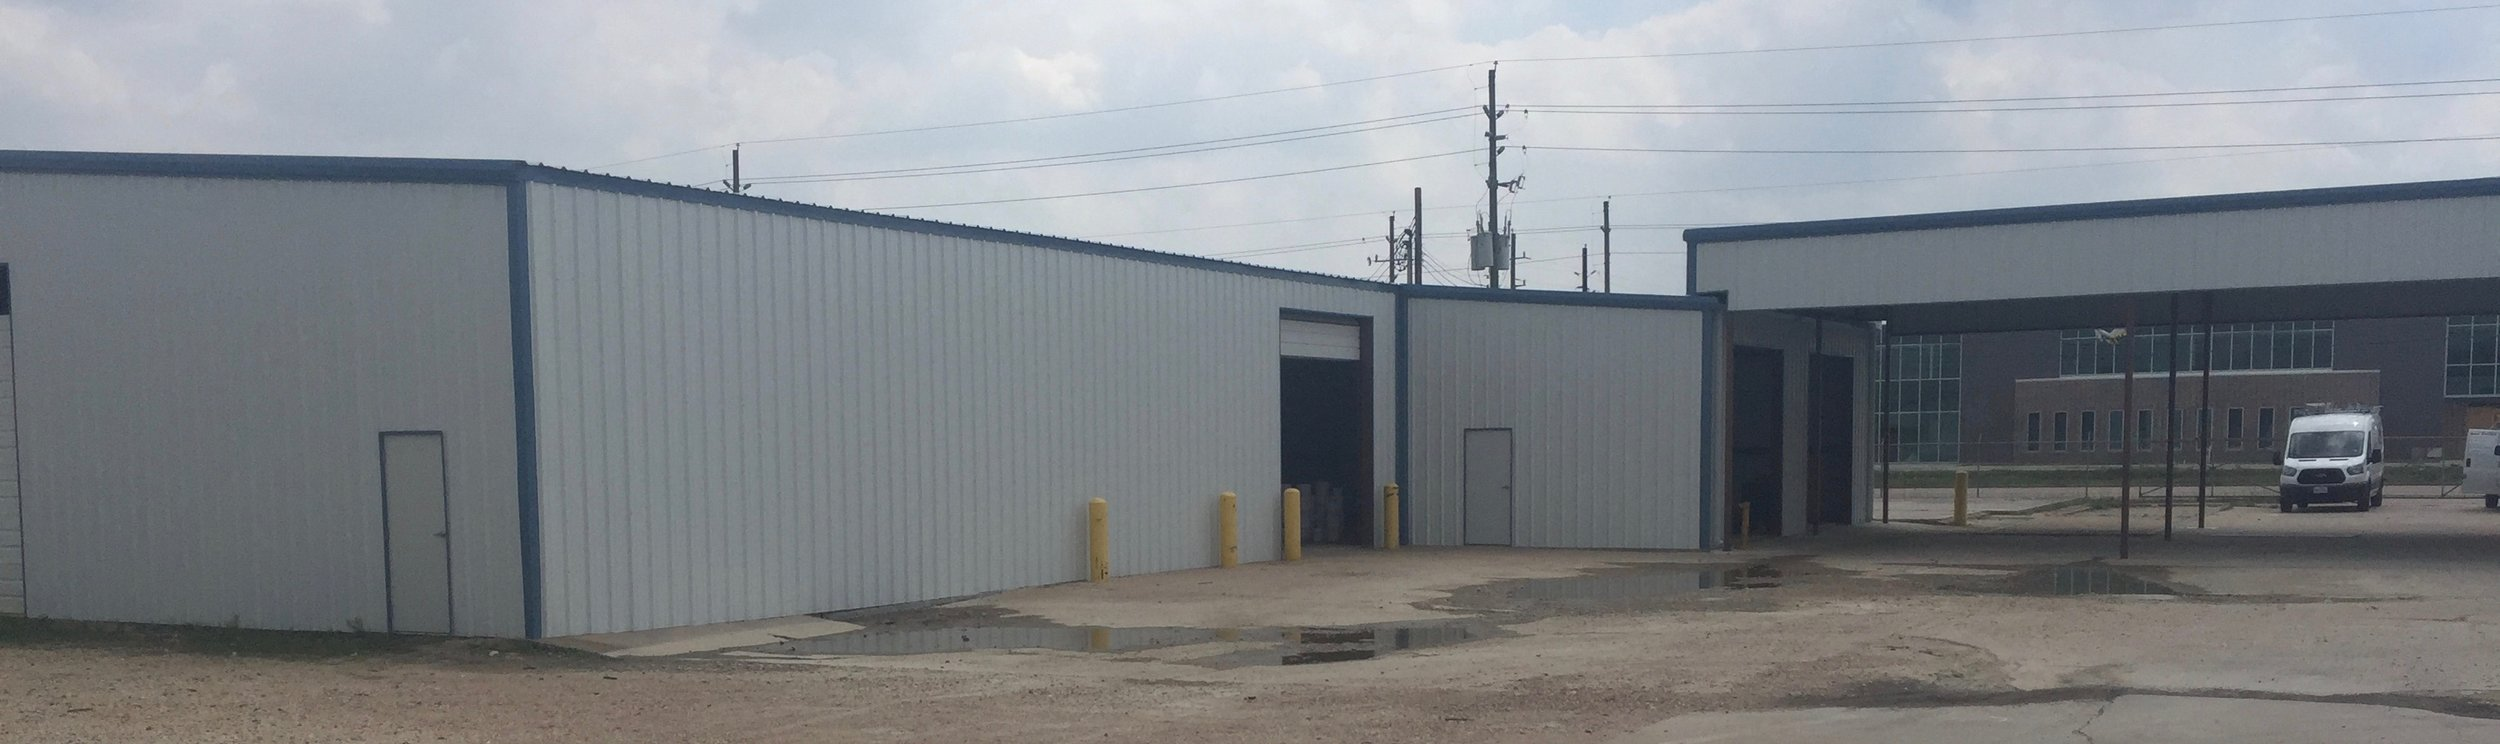 After a metal building wall and roof renovation - removed three overhead doors, re-located two overhead doors. Rear view. Small addition at front right.